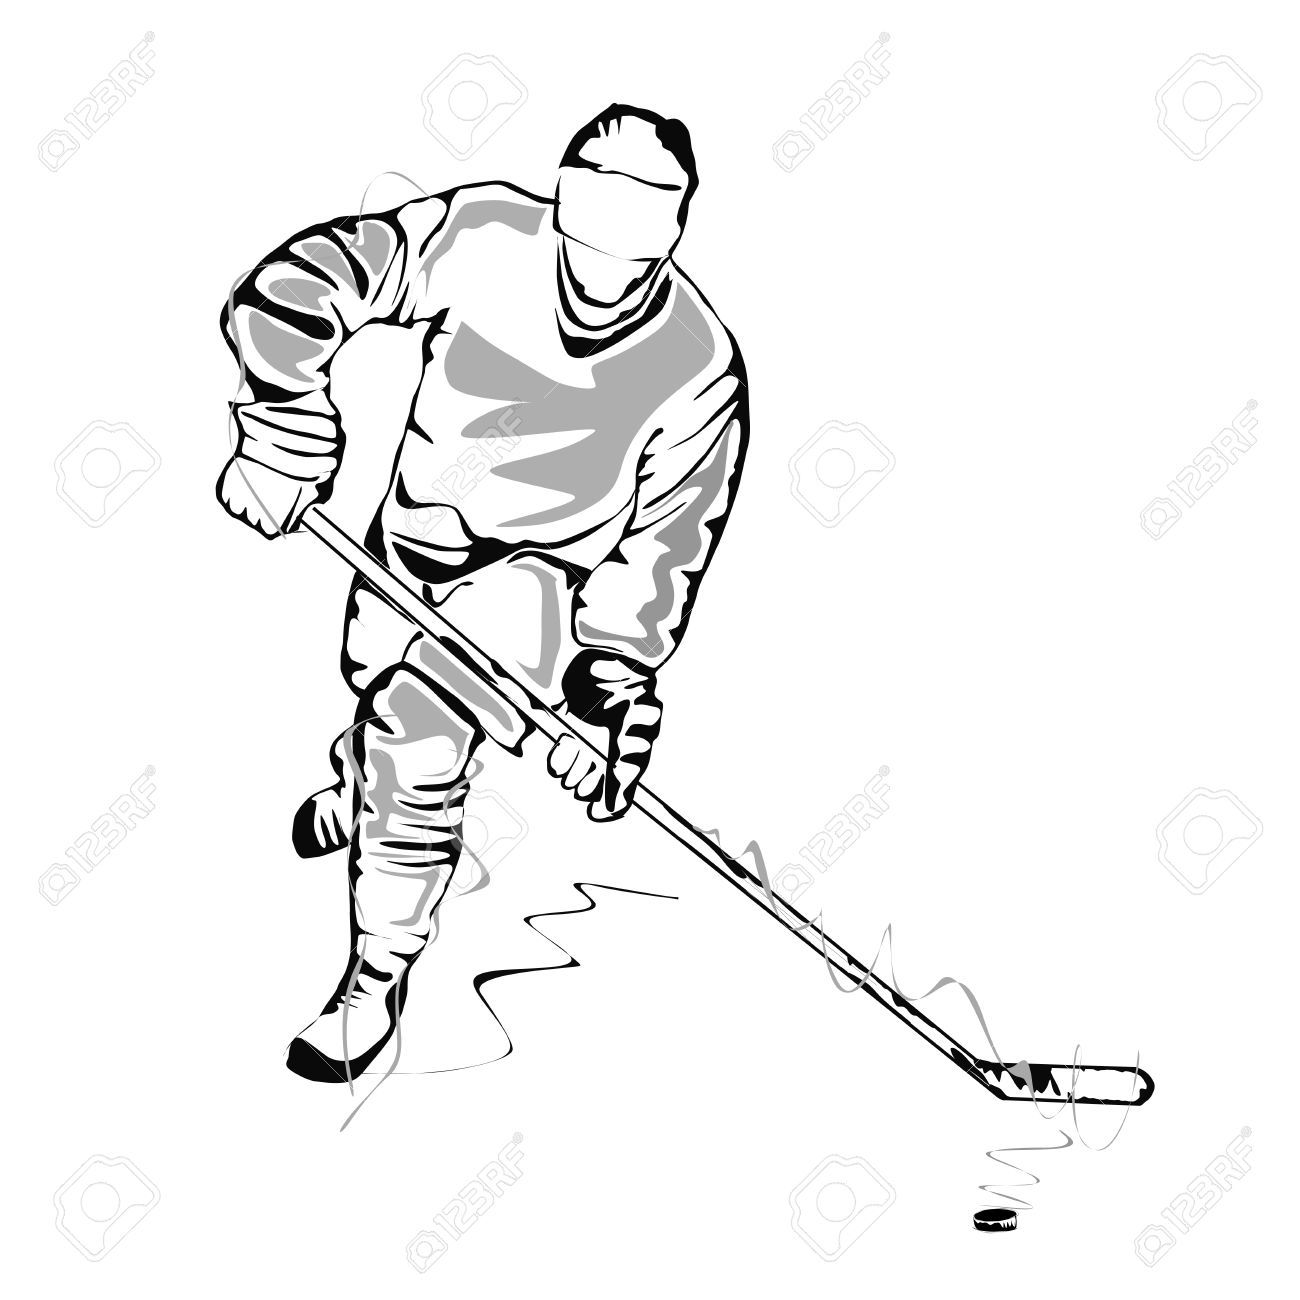 medium resolution of hockey player sketch royalty free cliparts vectors and stock